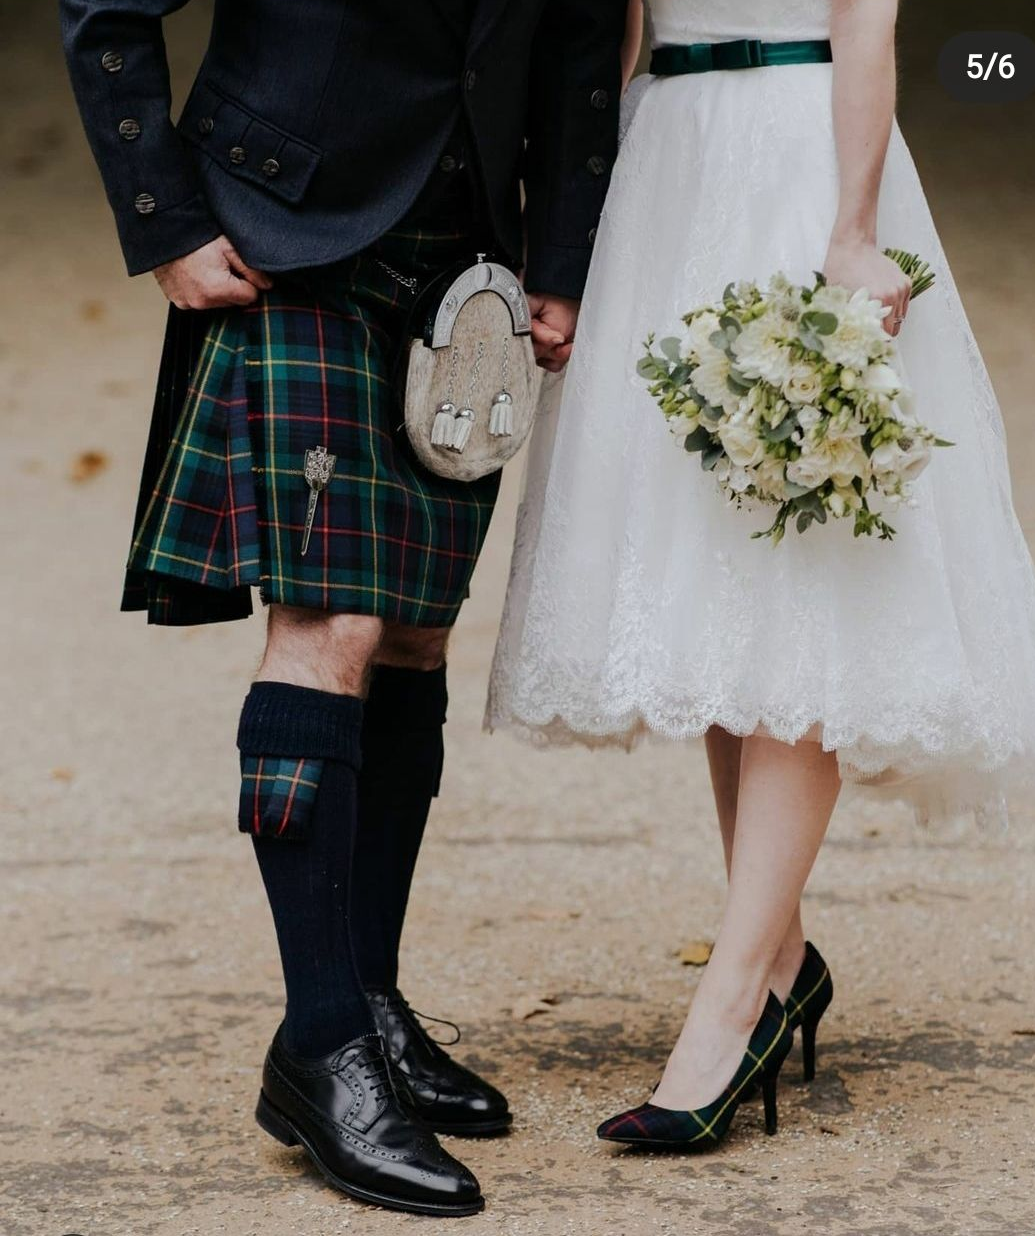 Stunning custom tartan wedding shoes, bespoke designed wedding heels